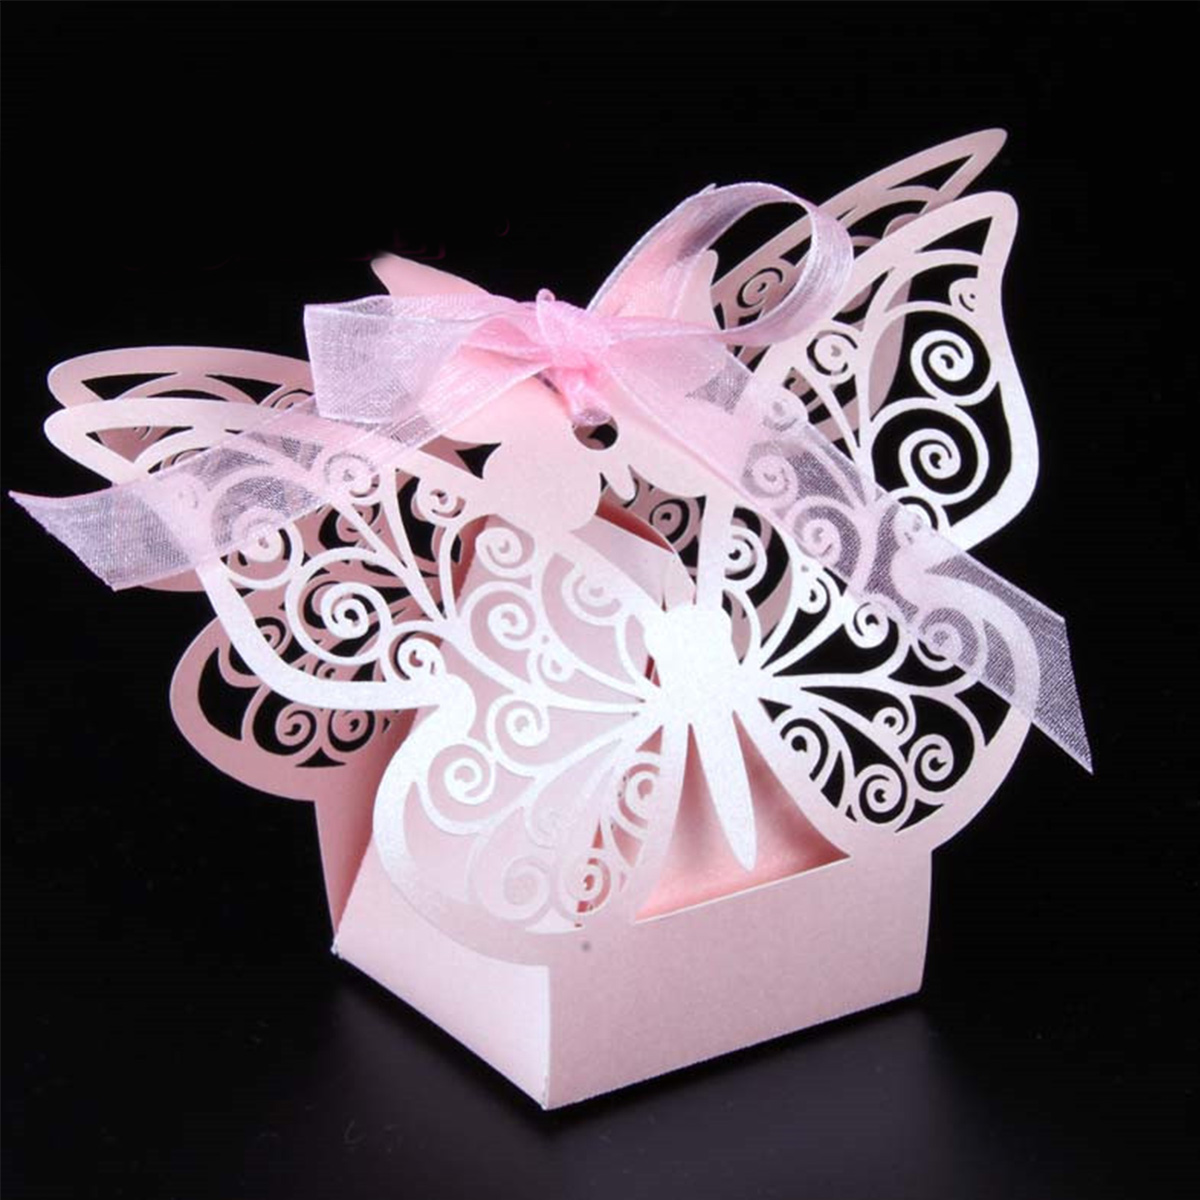 50Pcs Butterfly Gift Paper Boxes Creative Laser Cutting Wedding Candy Box Chocolate Carton Wedding Decoration Supplies50Pcs Butterfly Gift Paper Boxes Creative Laser Cutting Wedding Candy Box Chocolate Carton Wedding Decoration Supplies